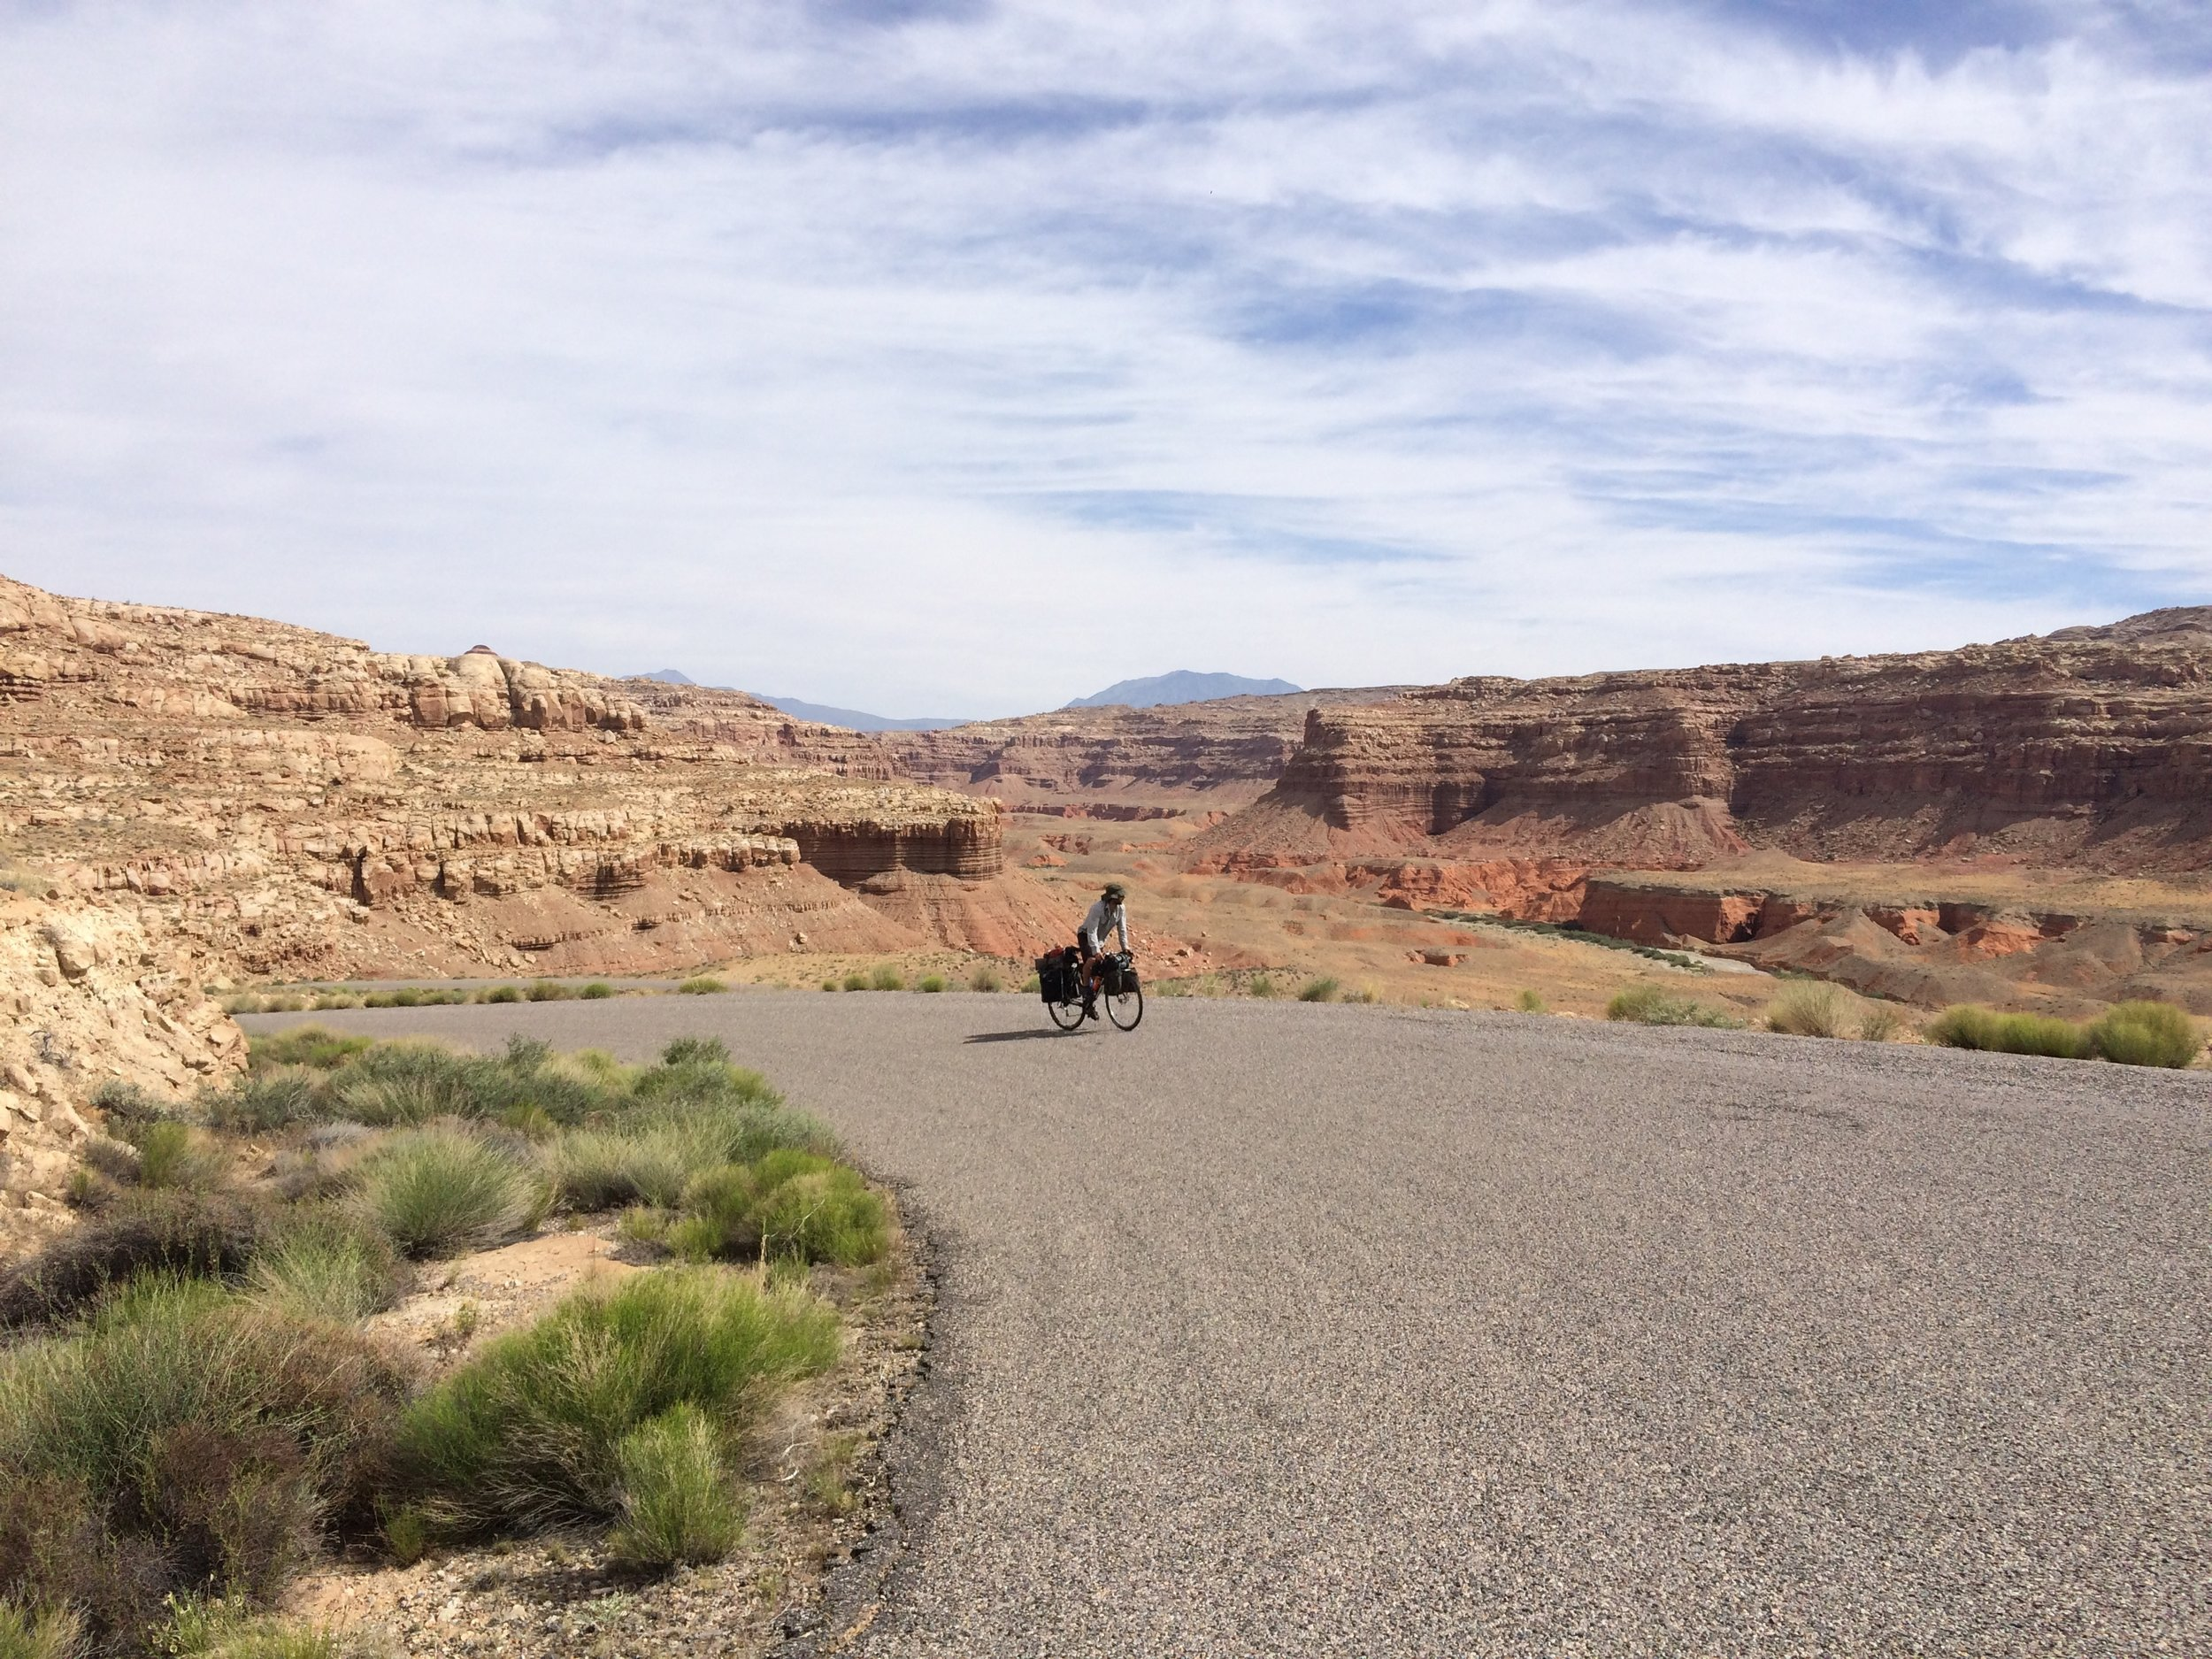 Ross ascending the Burr Trail